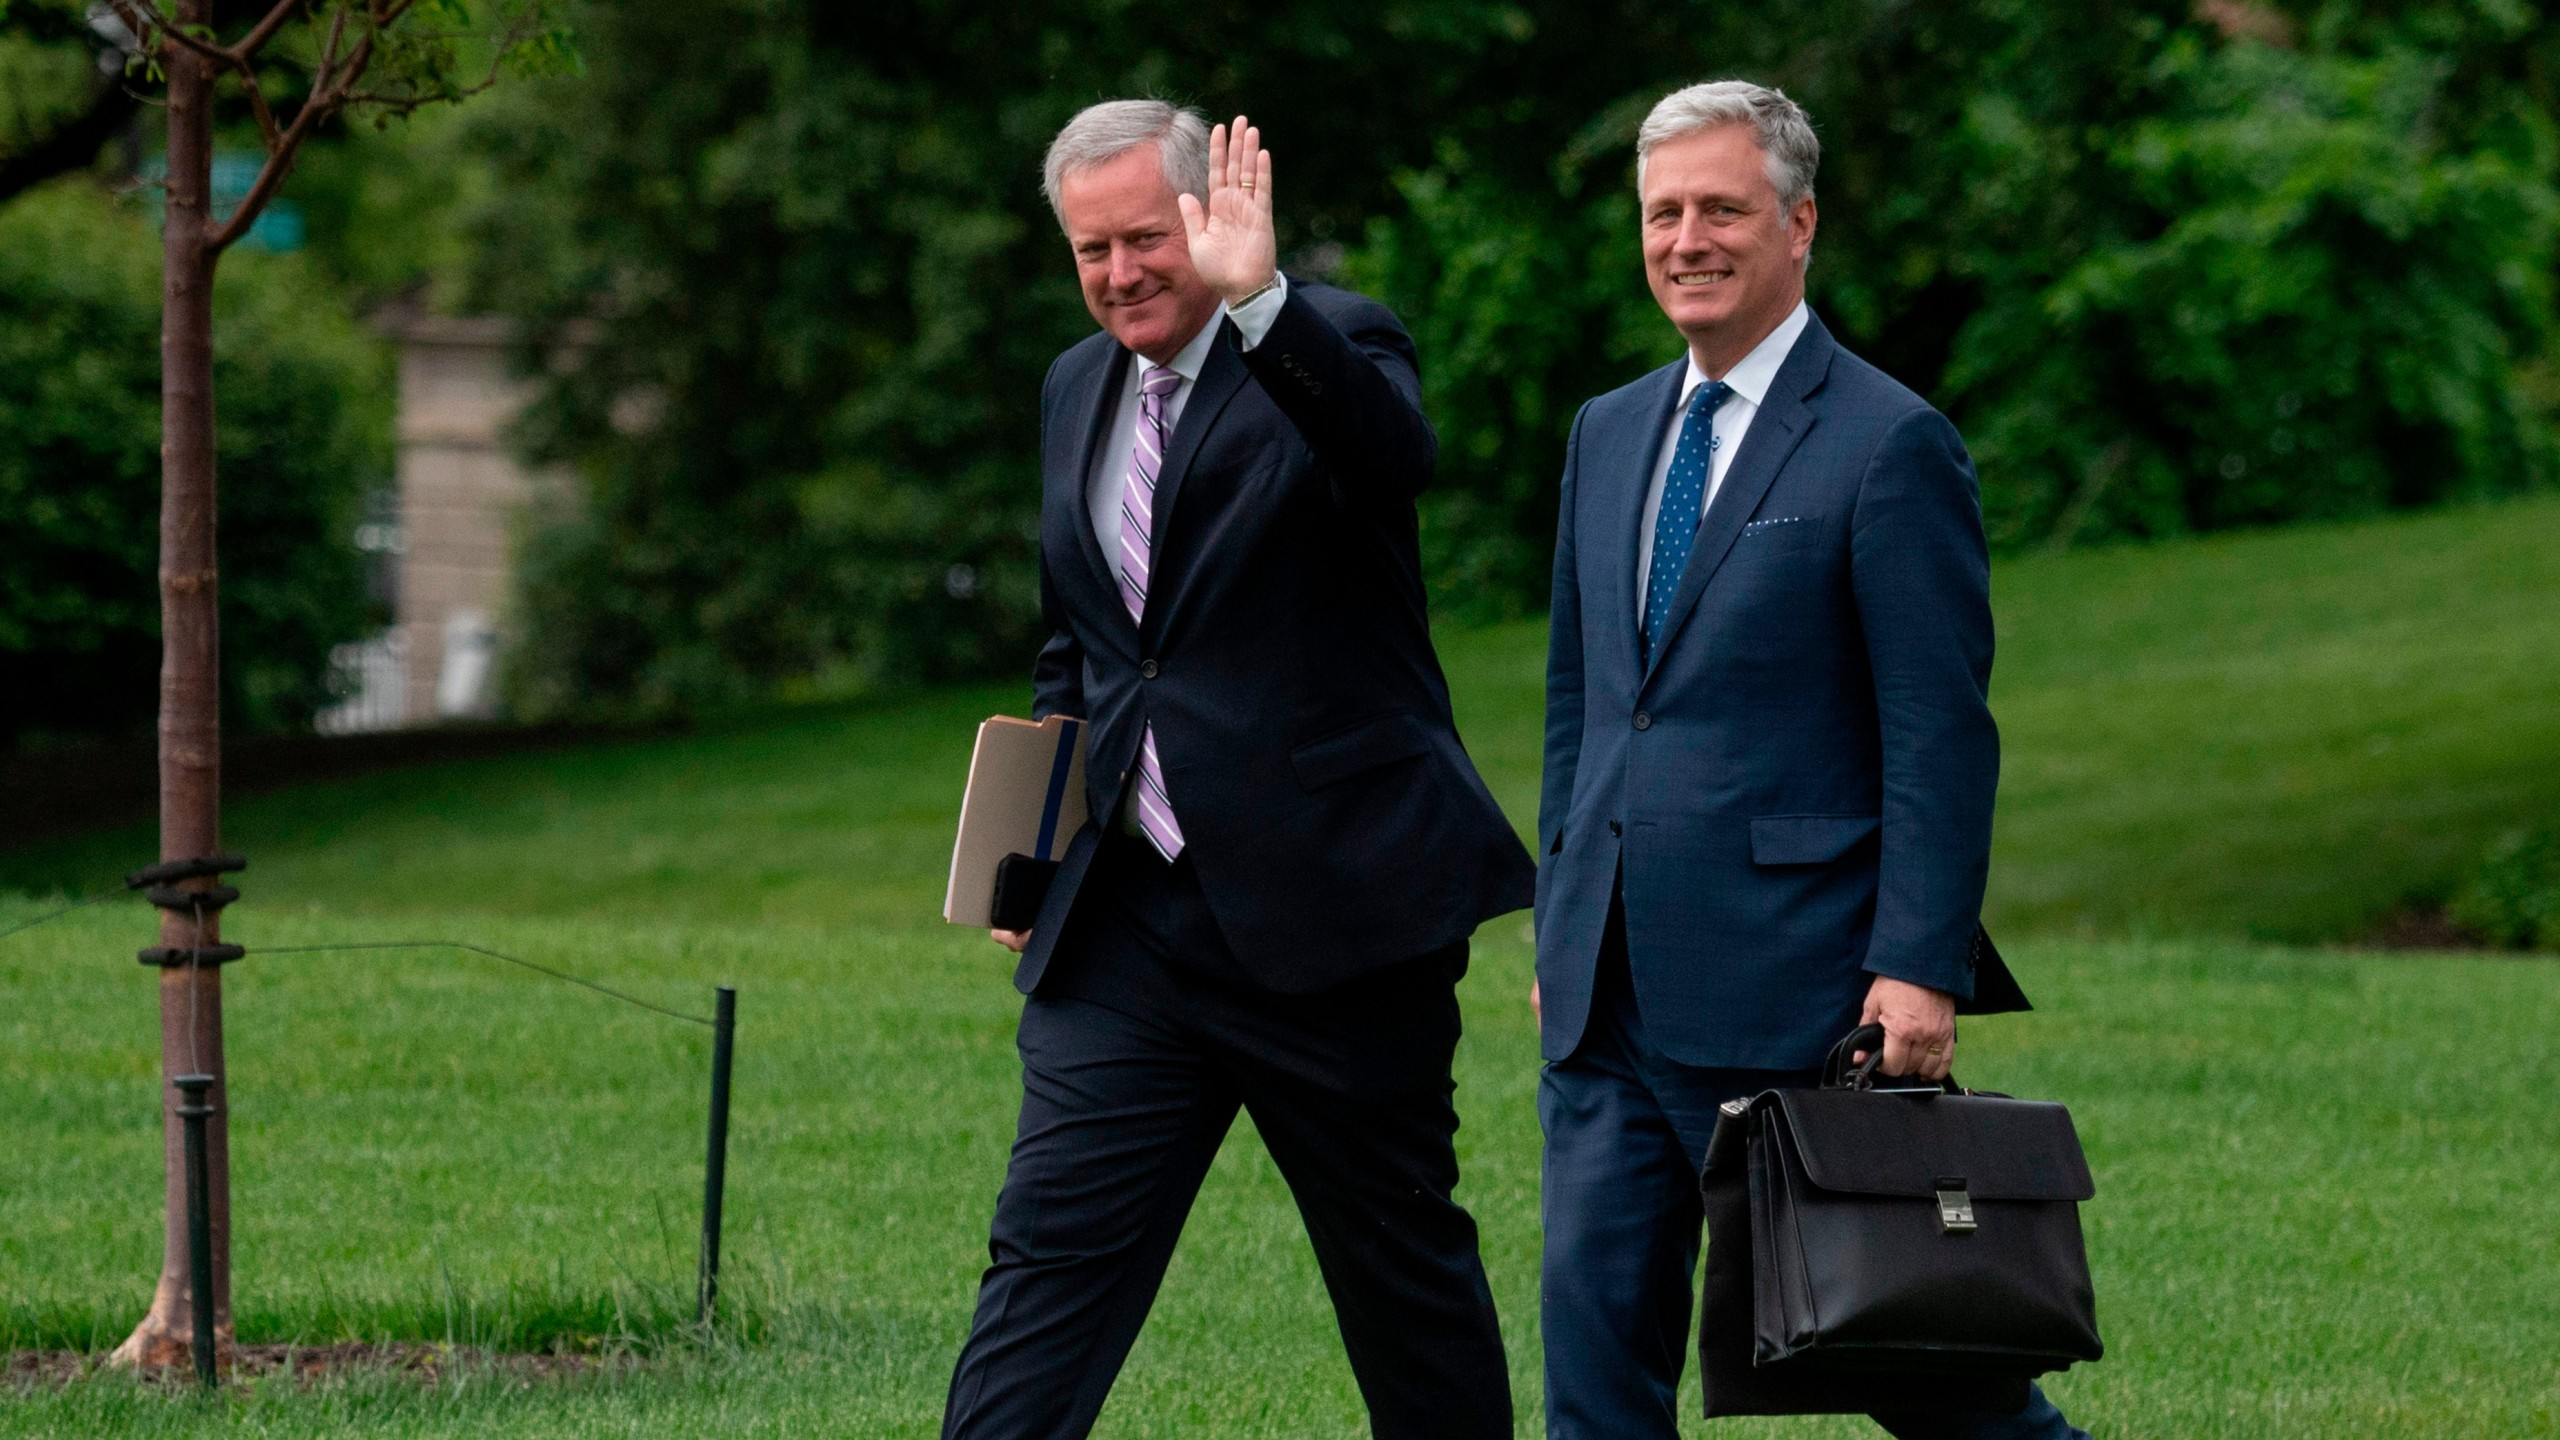 National Security Advisor Ambassador Robert O'Brien (R) and White House Chief of Staff Mark Meadows depart the White House, on May 5, 2020, in Washington, D.C. en route to Arizona, where President Donald Trump will tour a mask factory and hold a roundtable on Native American issues. (JIM WATSON/AFP via Getty Images)